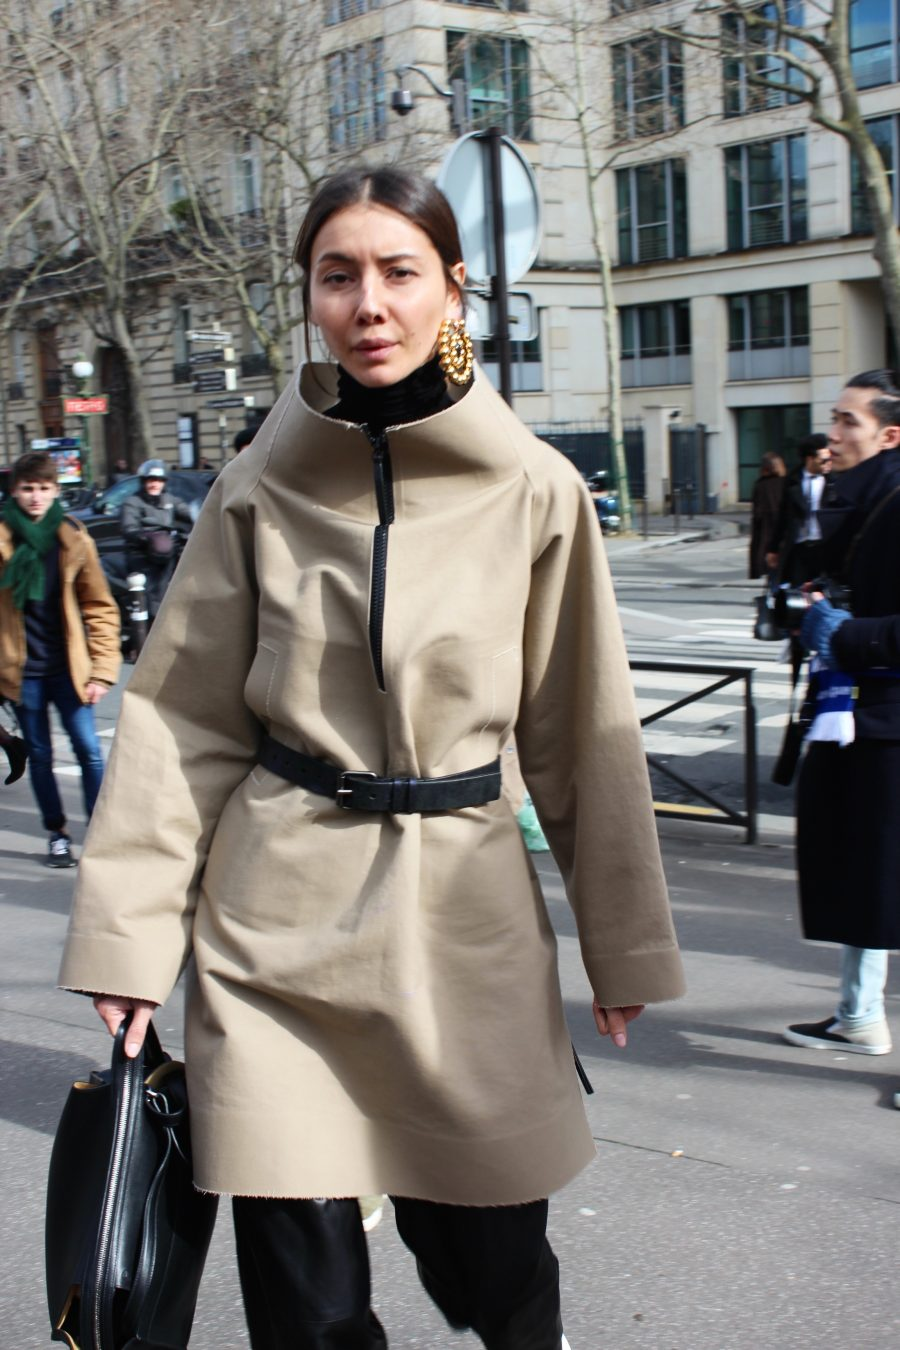 Paris Fashion Week Street Style Looks AH17 after Miu Miu